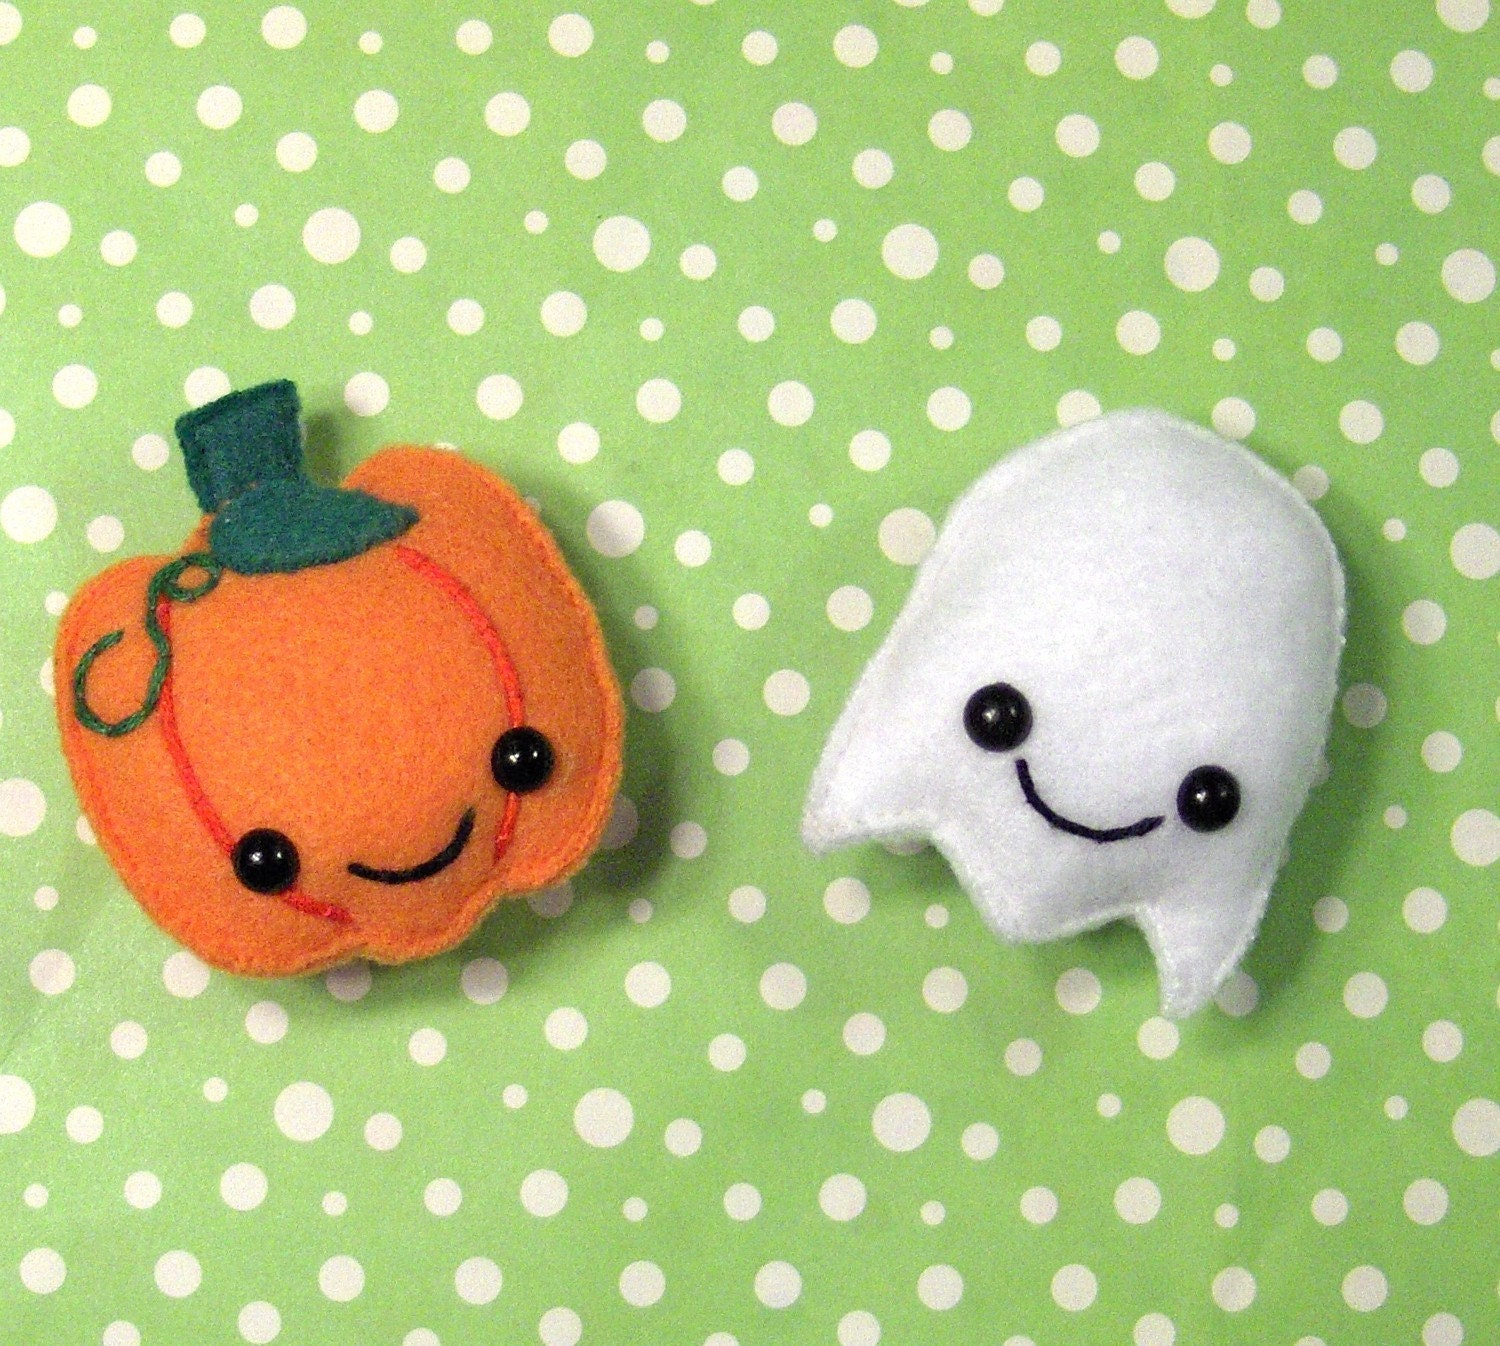 Spooky Friends Pumpkin and Ghost Magnets